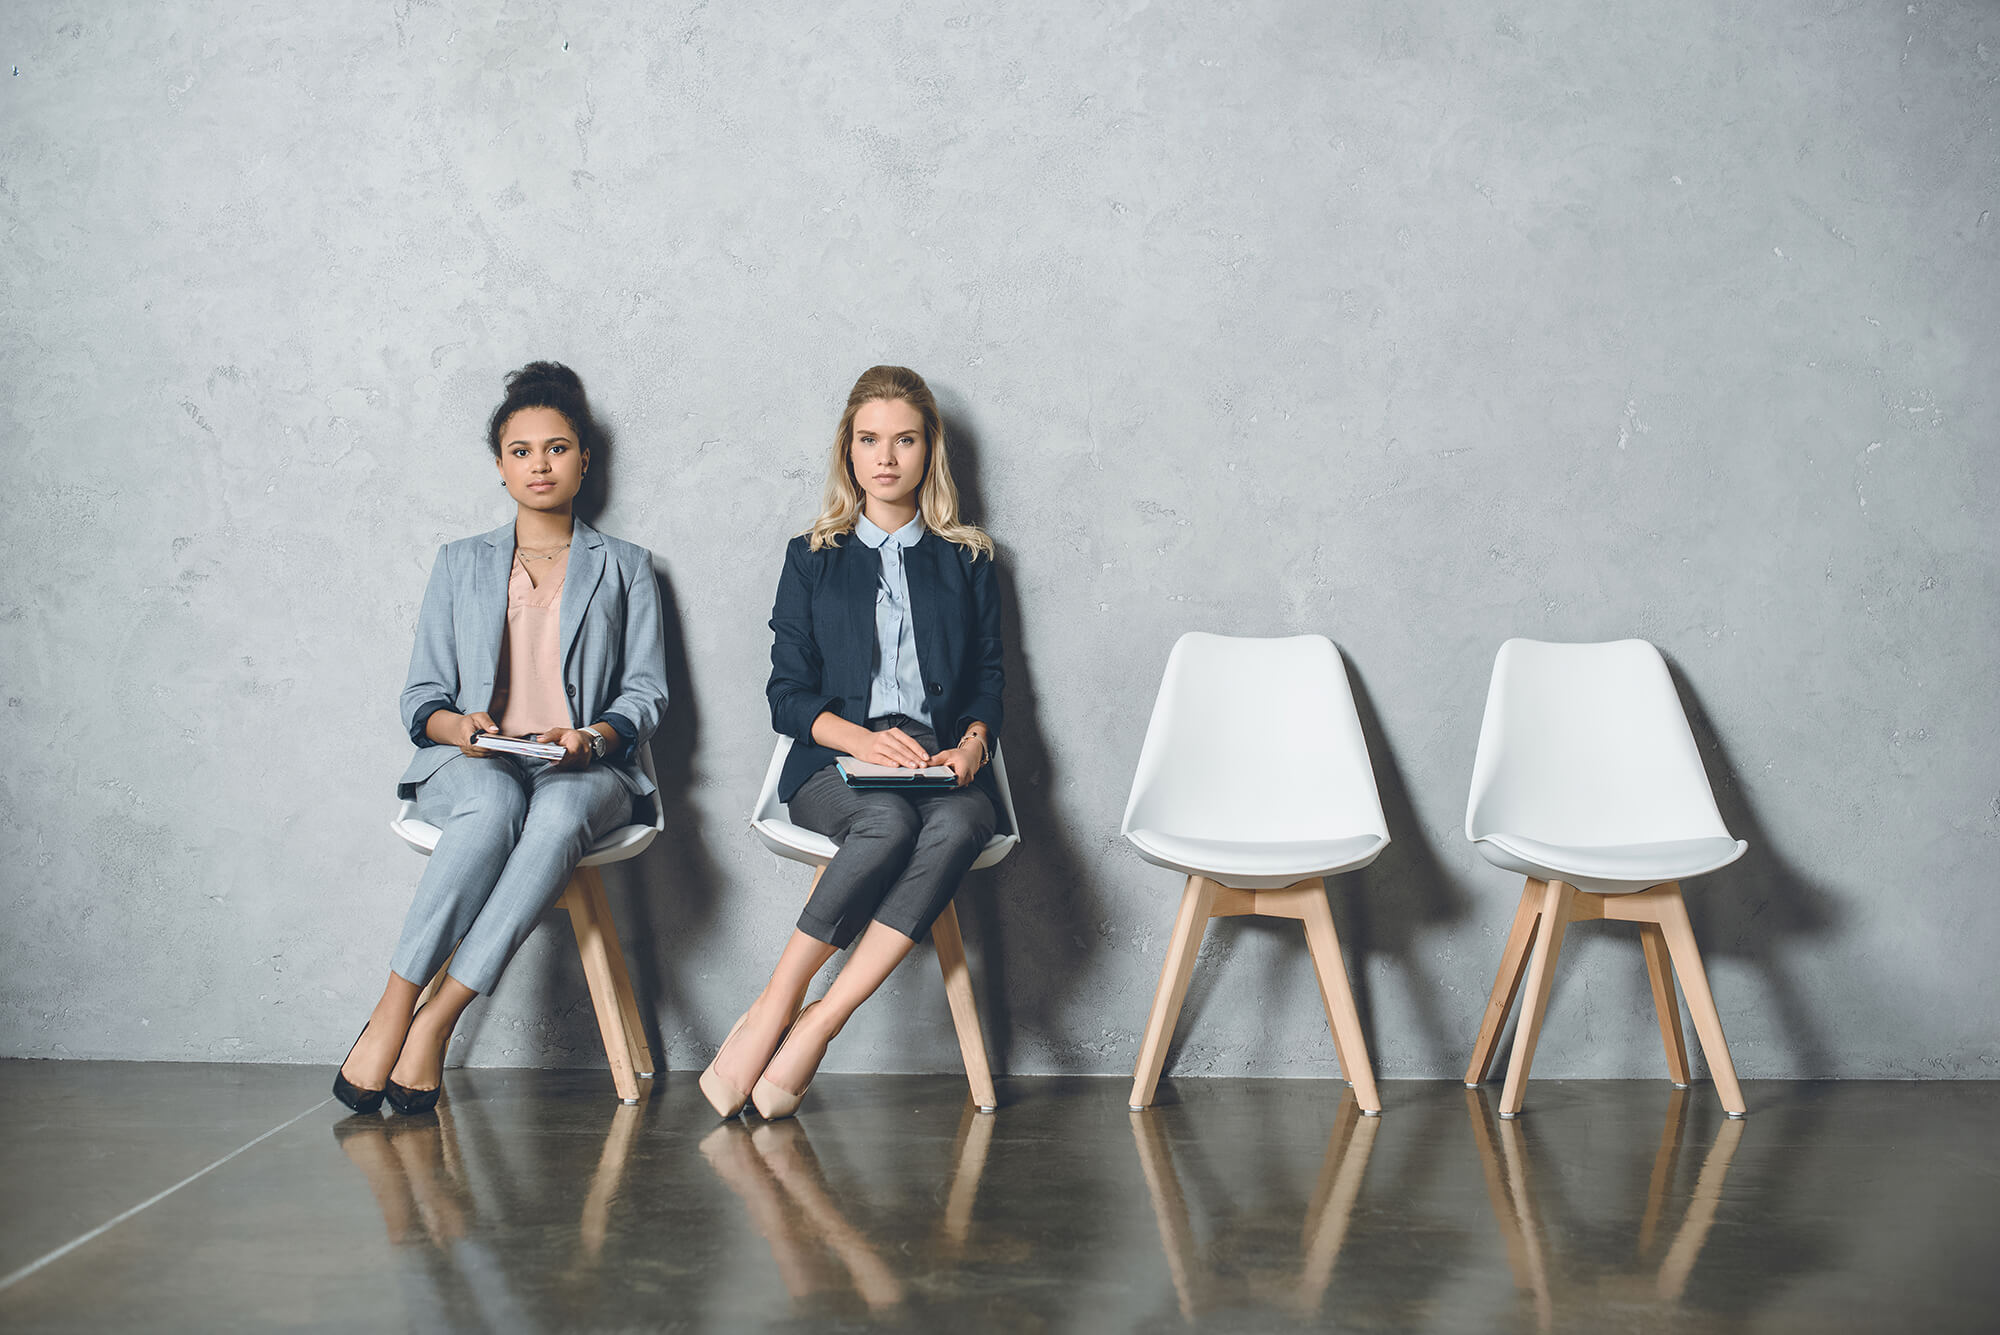 Two women sitting on a two chair waiting for something